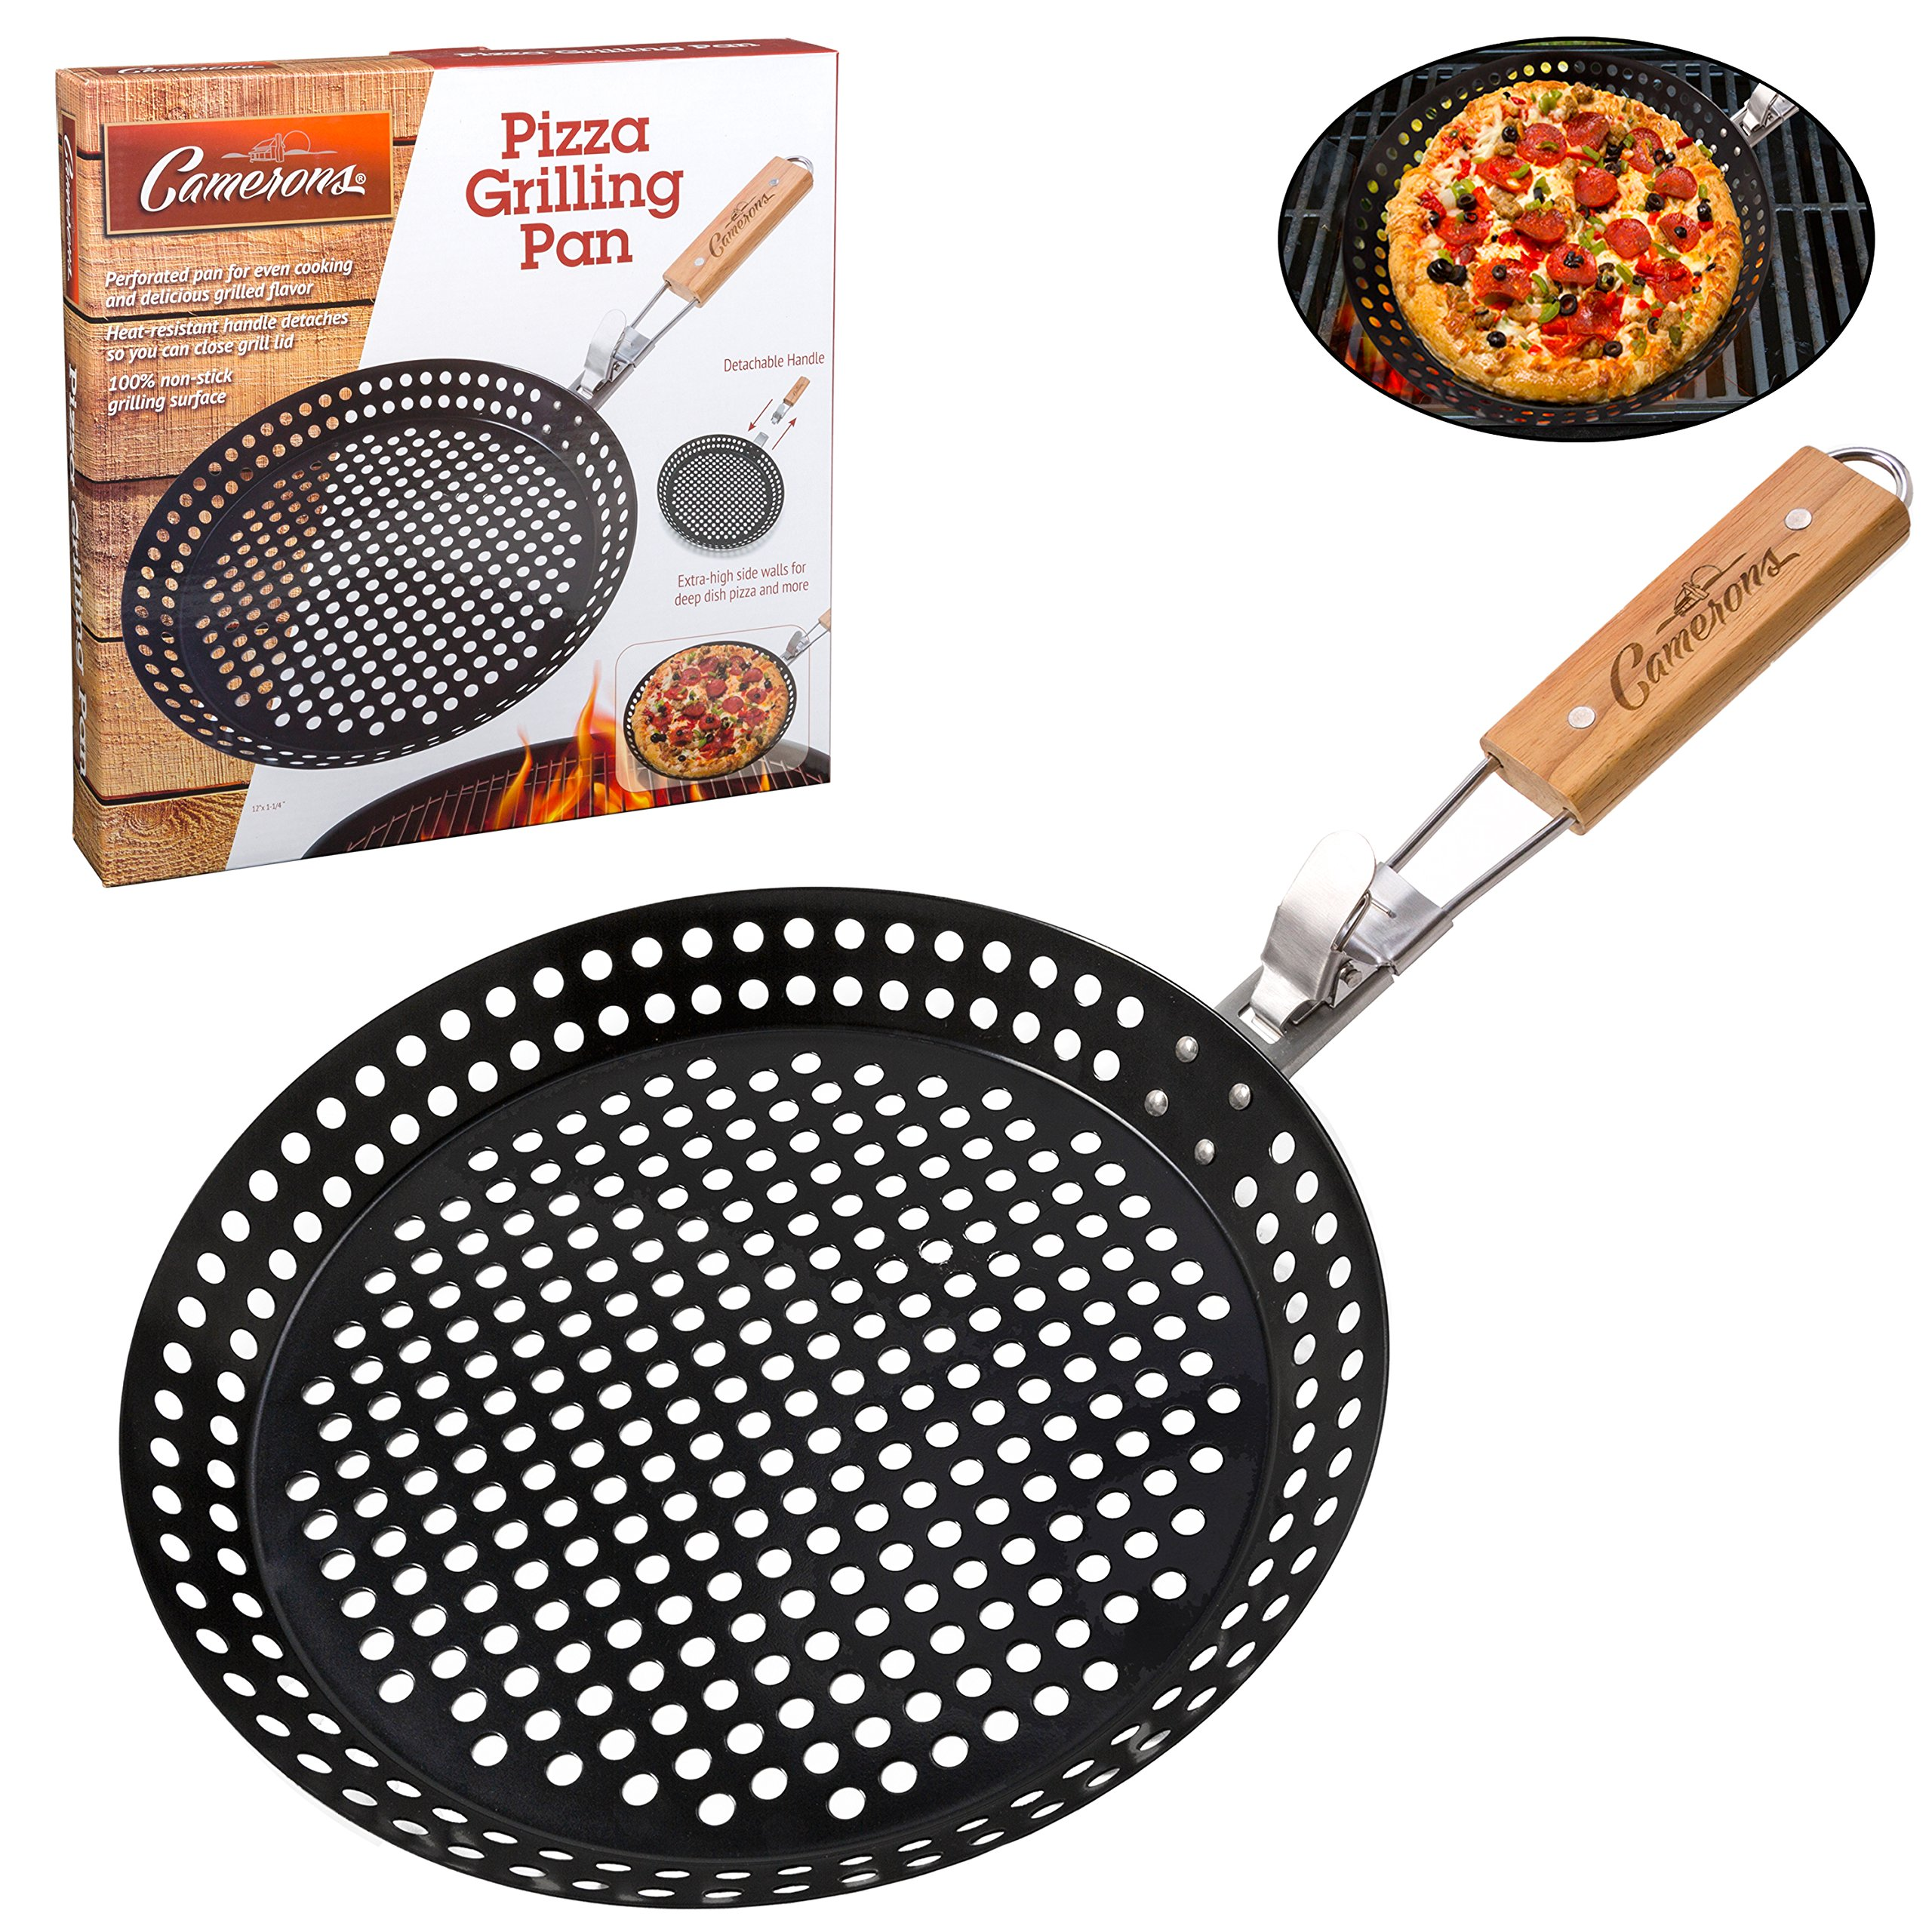 Pizza Grill Pan (12'') w Removable Handle - Non-Stick w Extra High Walls - Great for Grilling Vegetables, Seafood, Shish Kebab